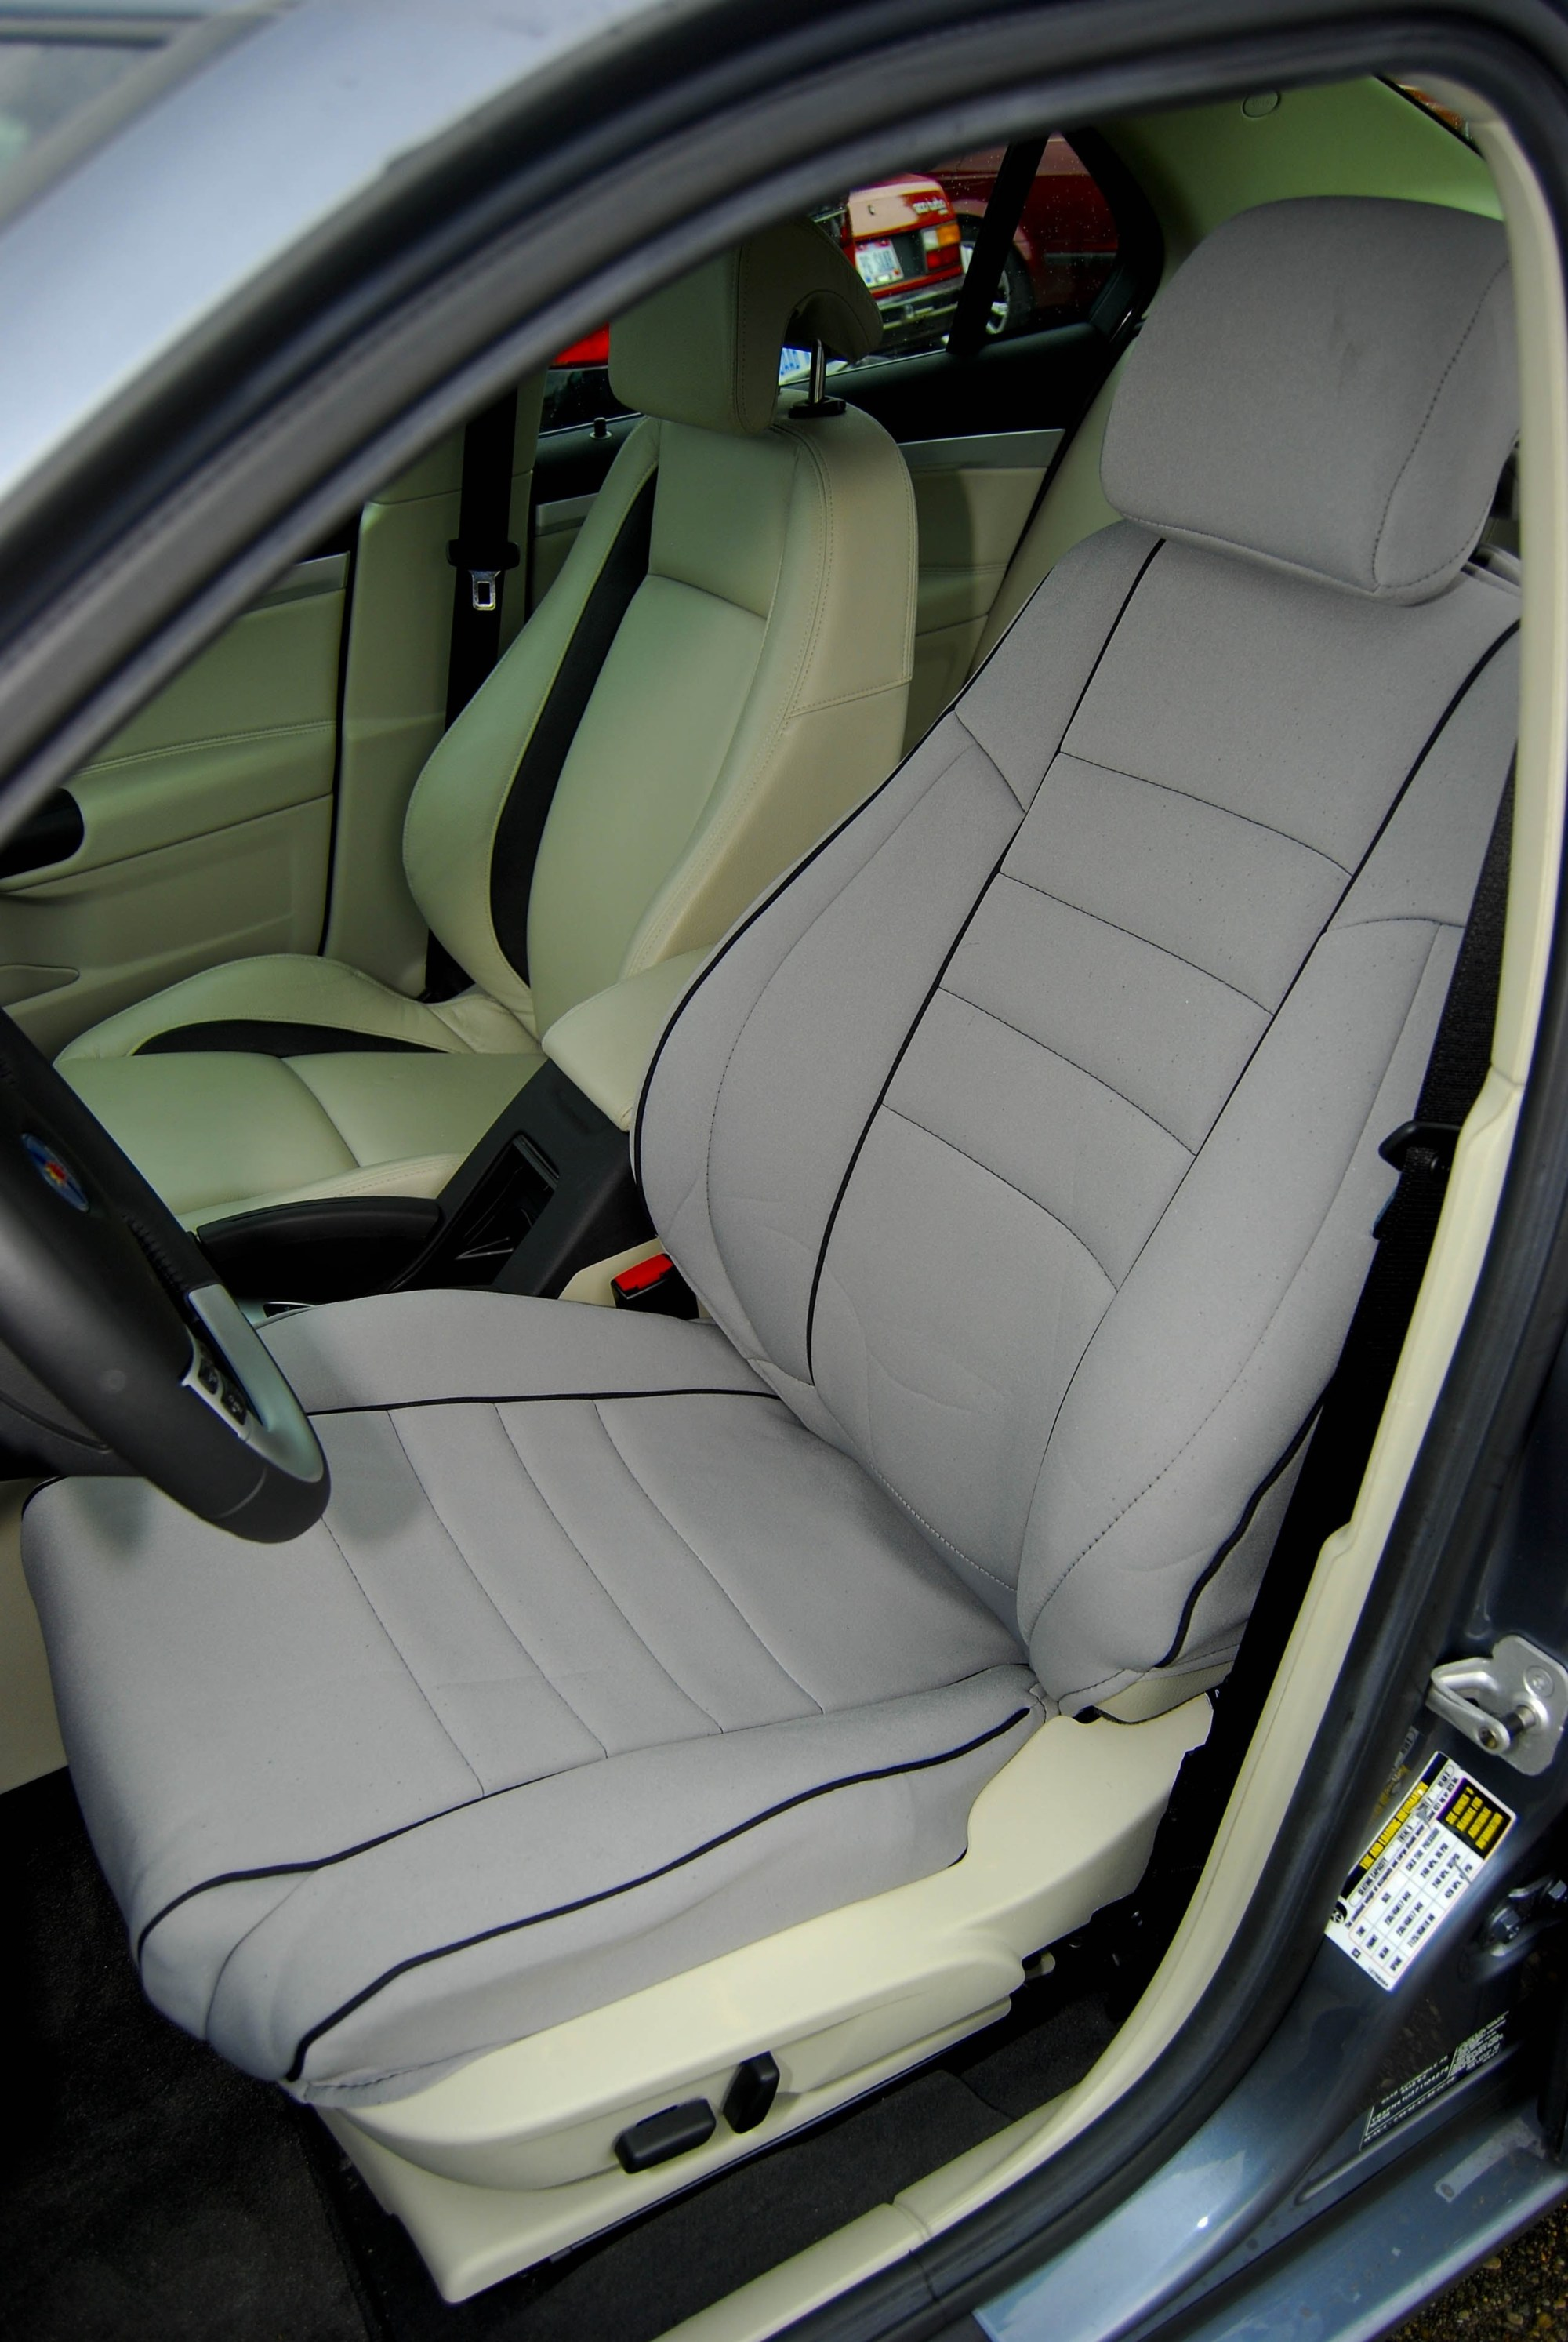 hight resolution of  2007 9 3ss 21 grey driver s seat example